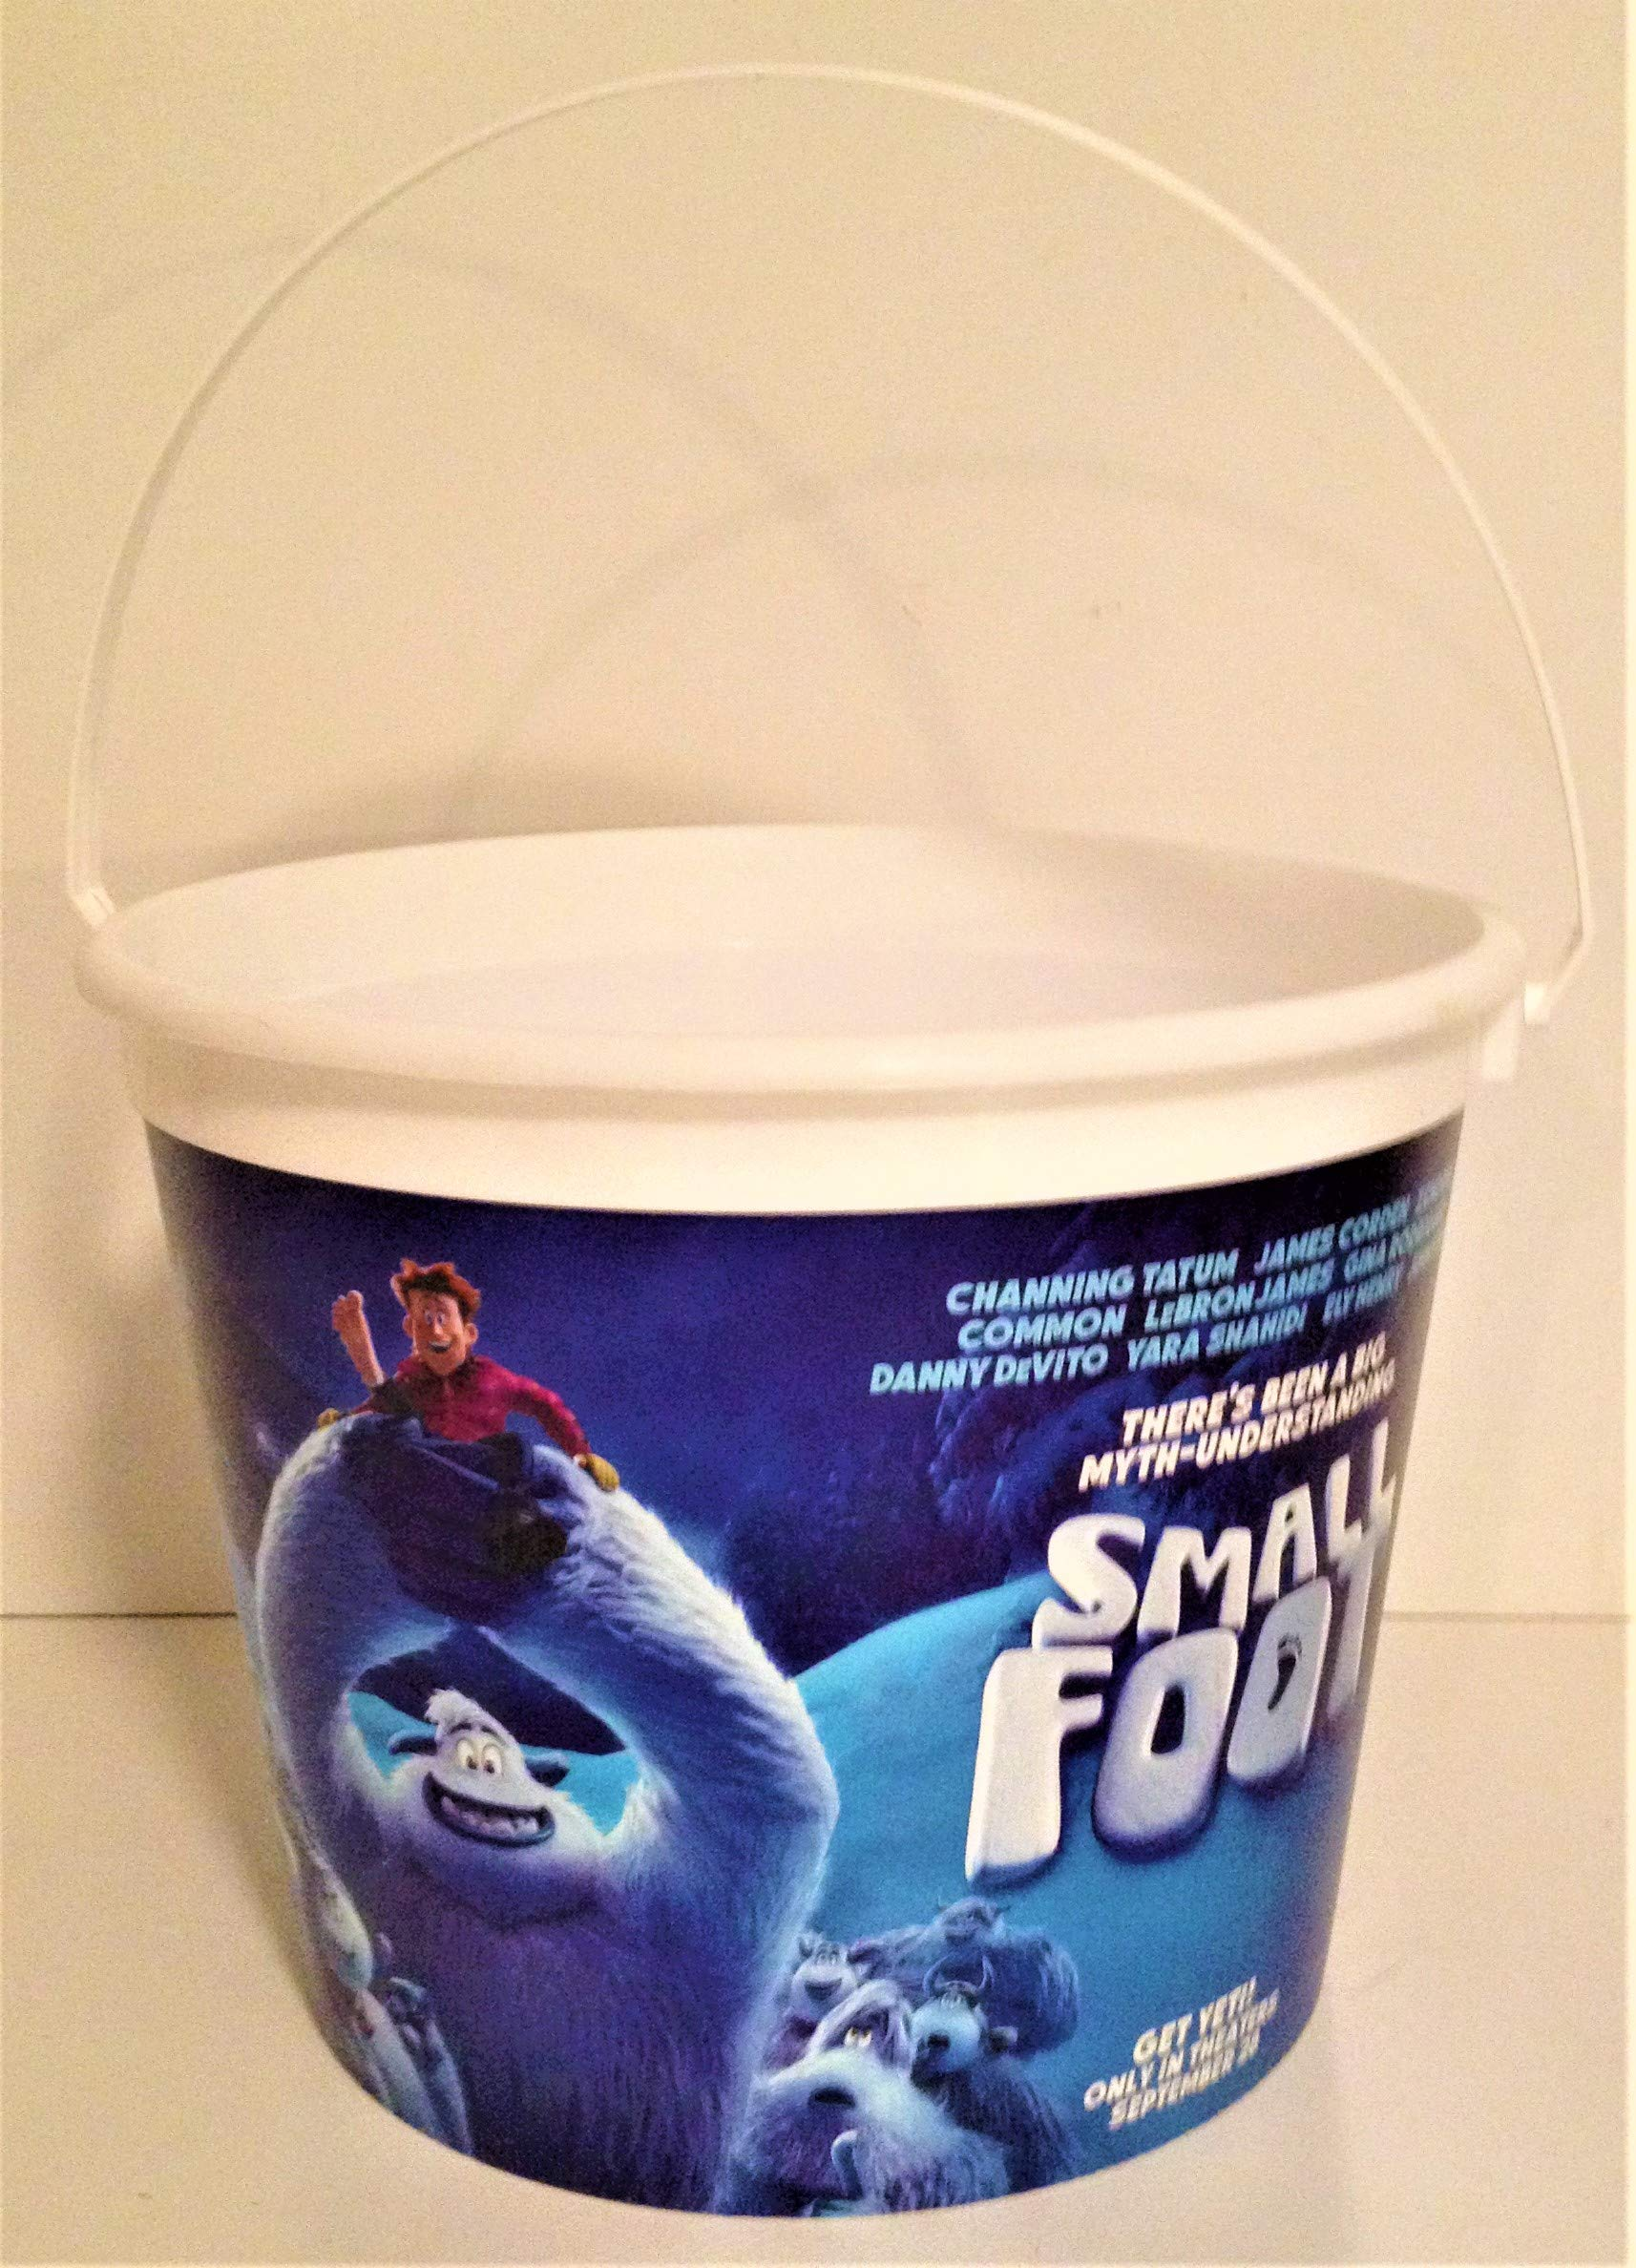 Smallfoot Movie Theater Exclusive 170 oz Plastic Popcorn Tub